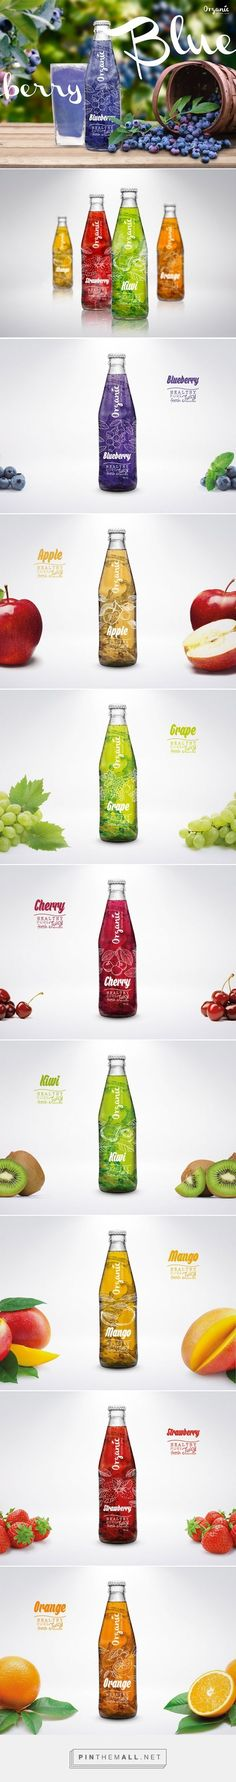 Organic Natural Juice concept by Mario Castillo. Pin curated by #SFields99 #packaging #design #naturaljuice